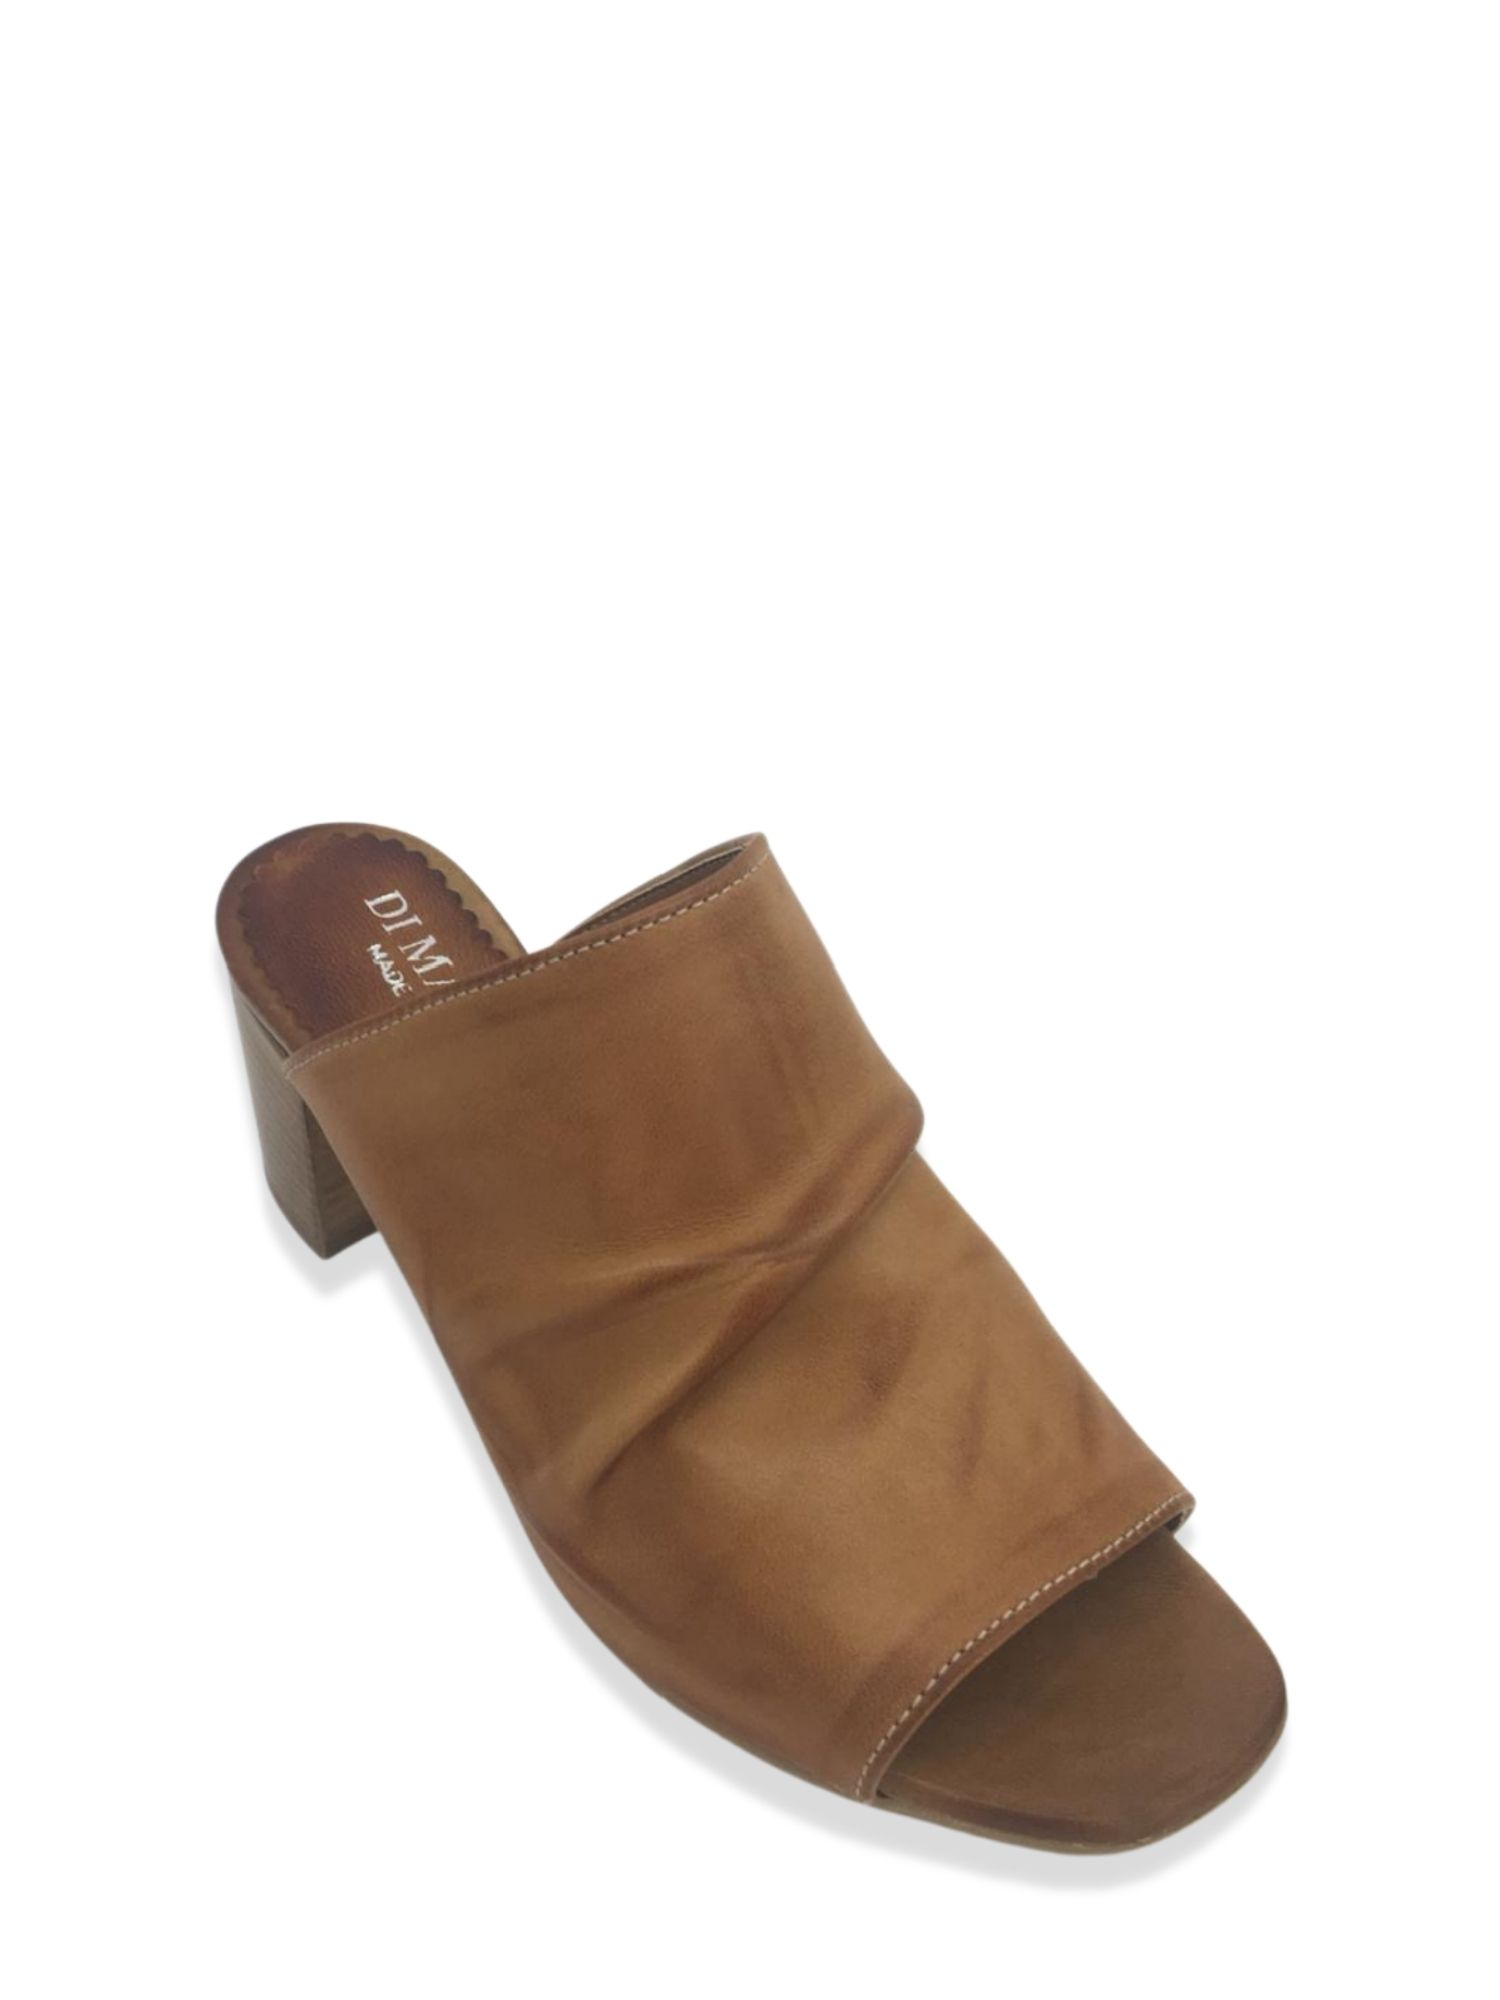 Sandalo Sabot Made in Italy 107 Cuoio laterale